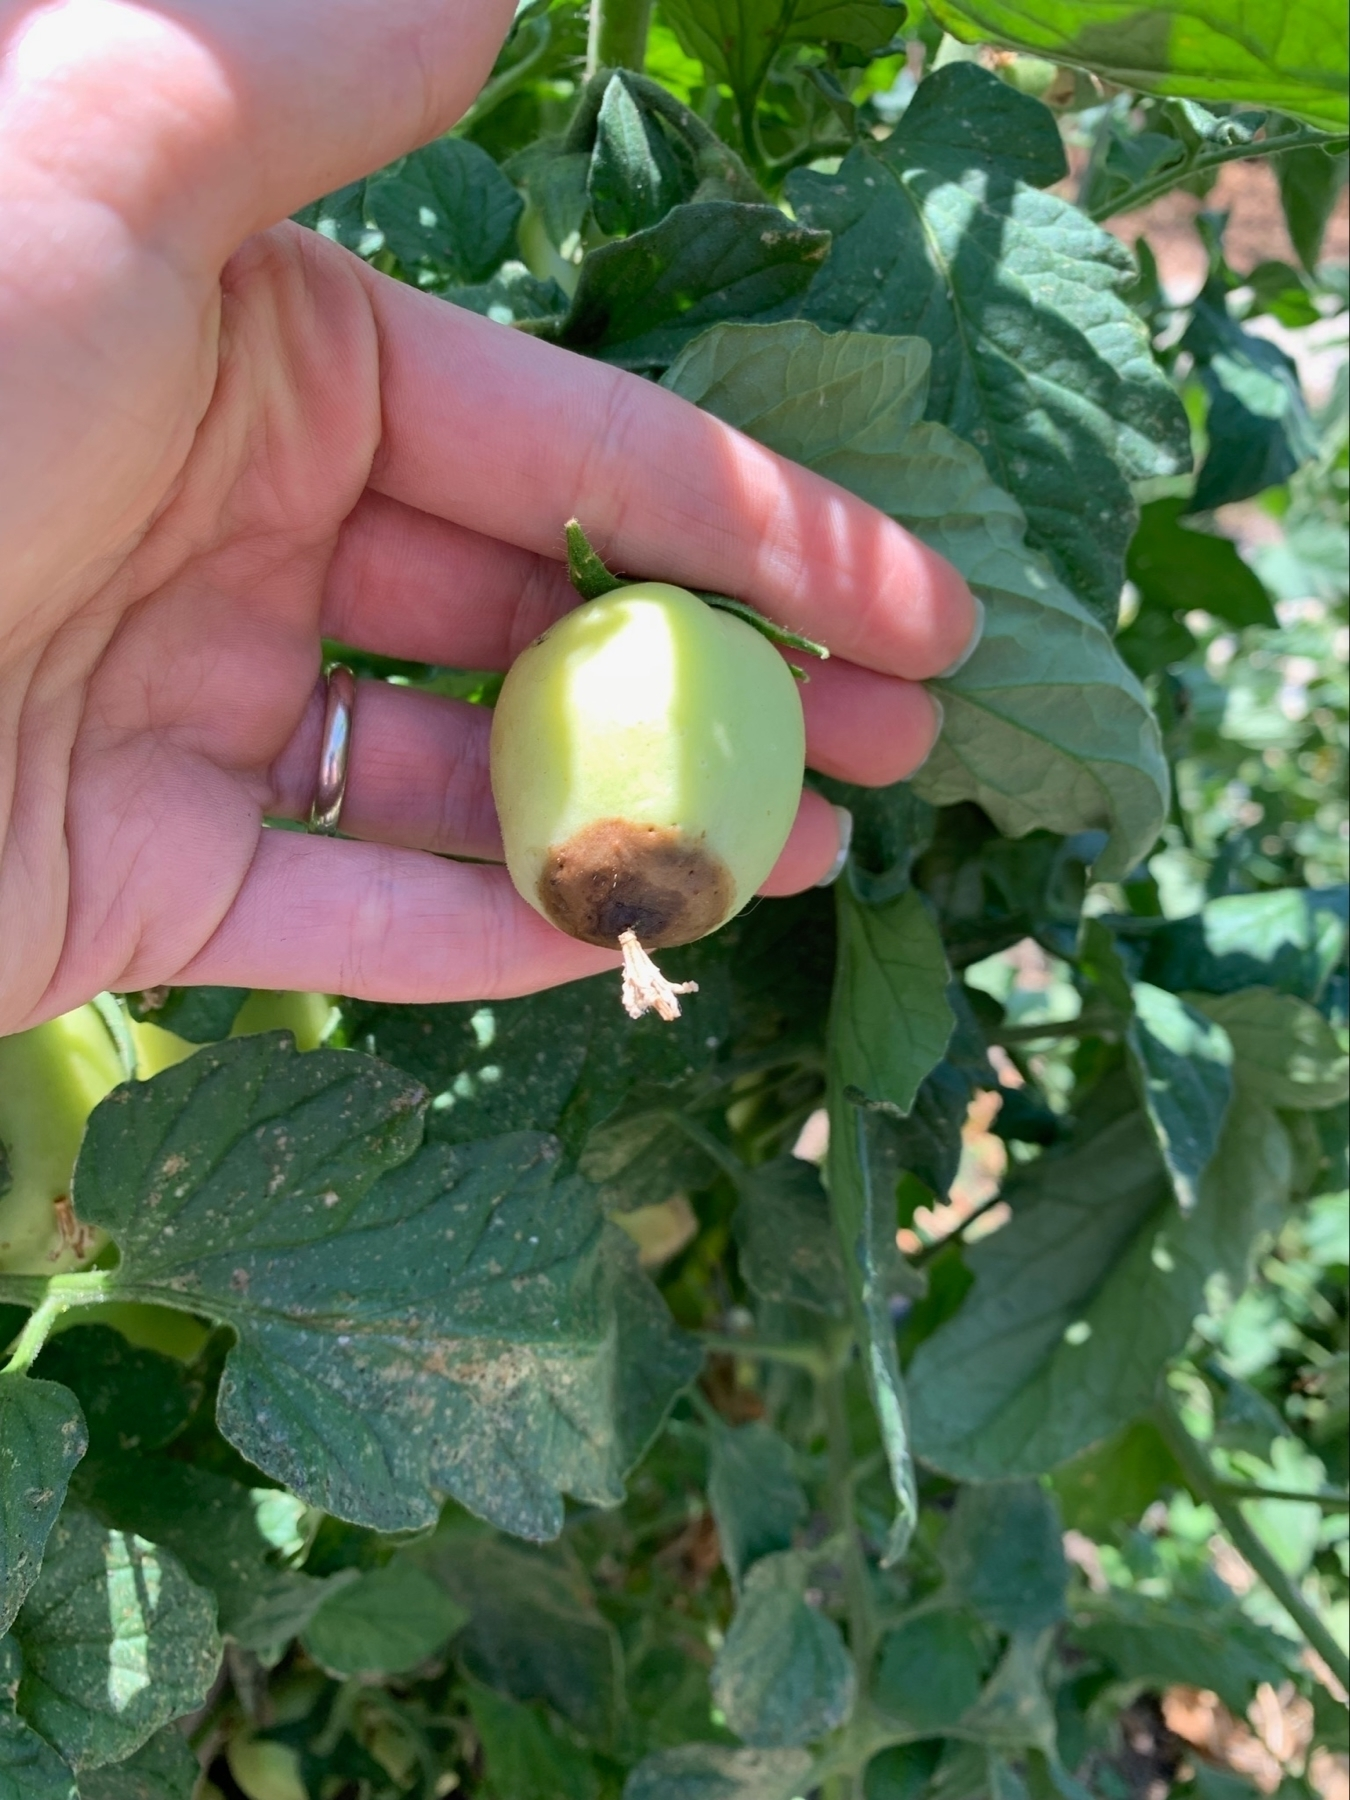 brown end rot on a tomato